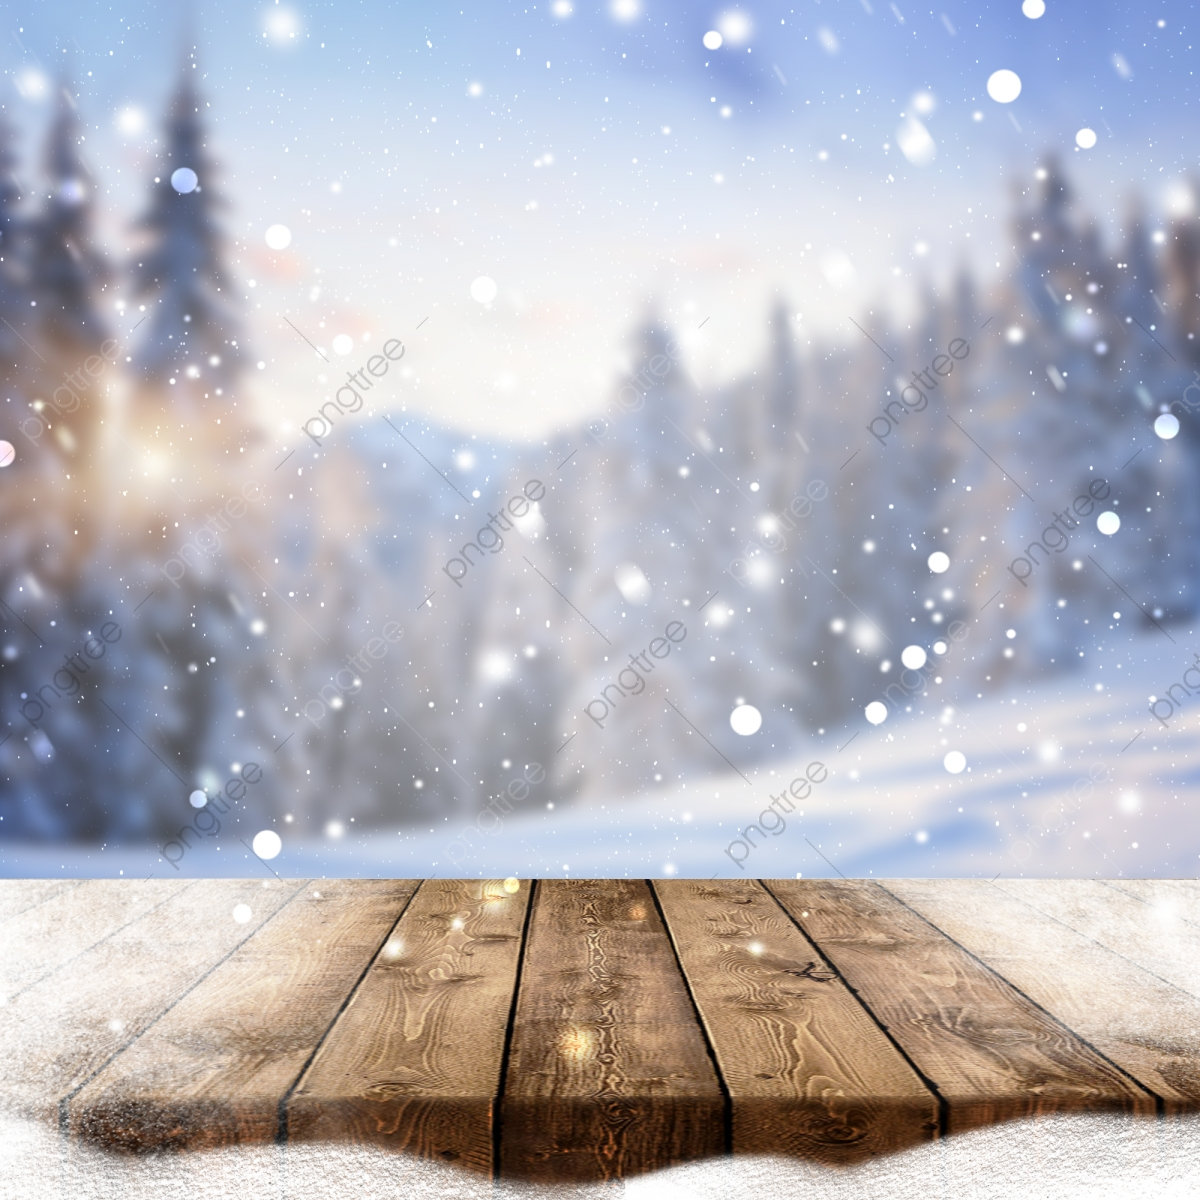 Christmas Wood Background.Winter Christmas Wood Background4 Winter Abstract Xmas